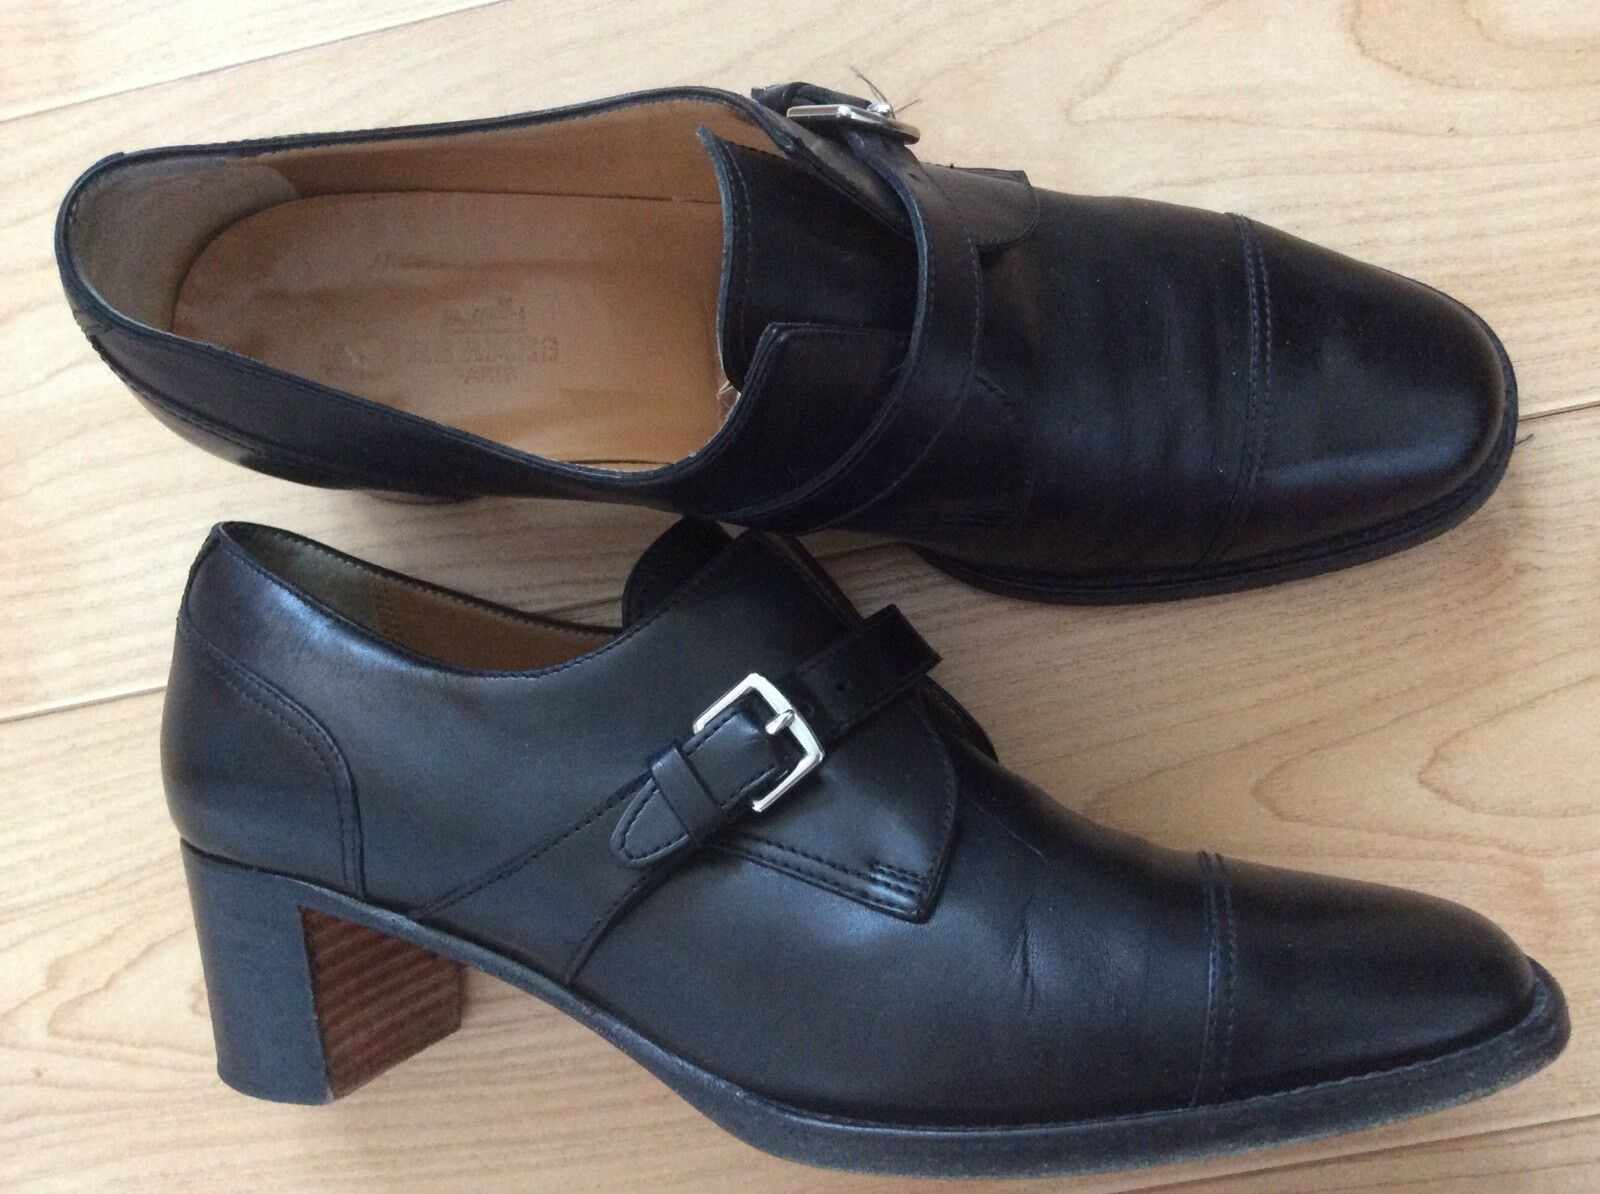 HERMÈS Cap Toe Black Leather Heels shoes With Buckle Size 39.5 Made In